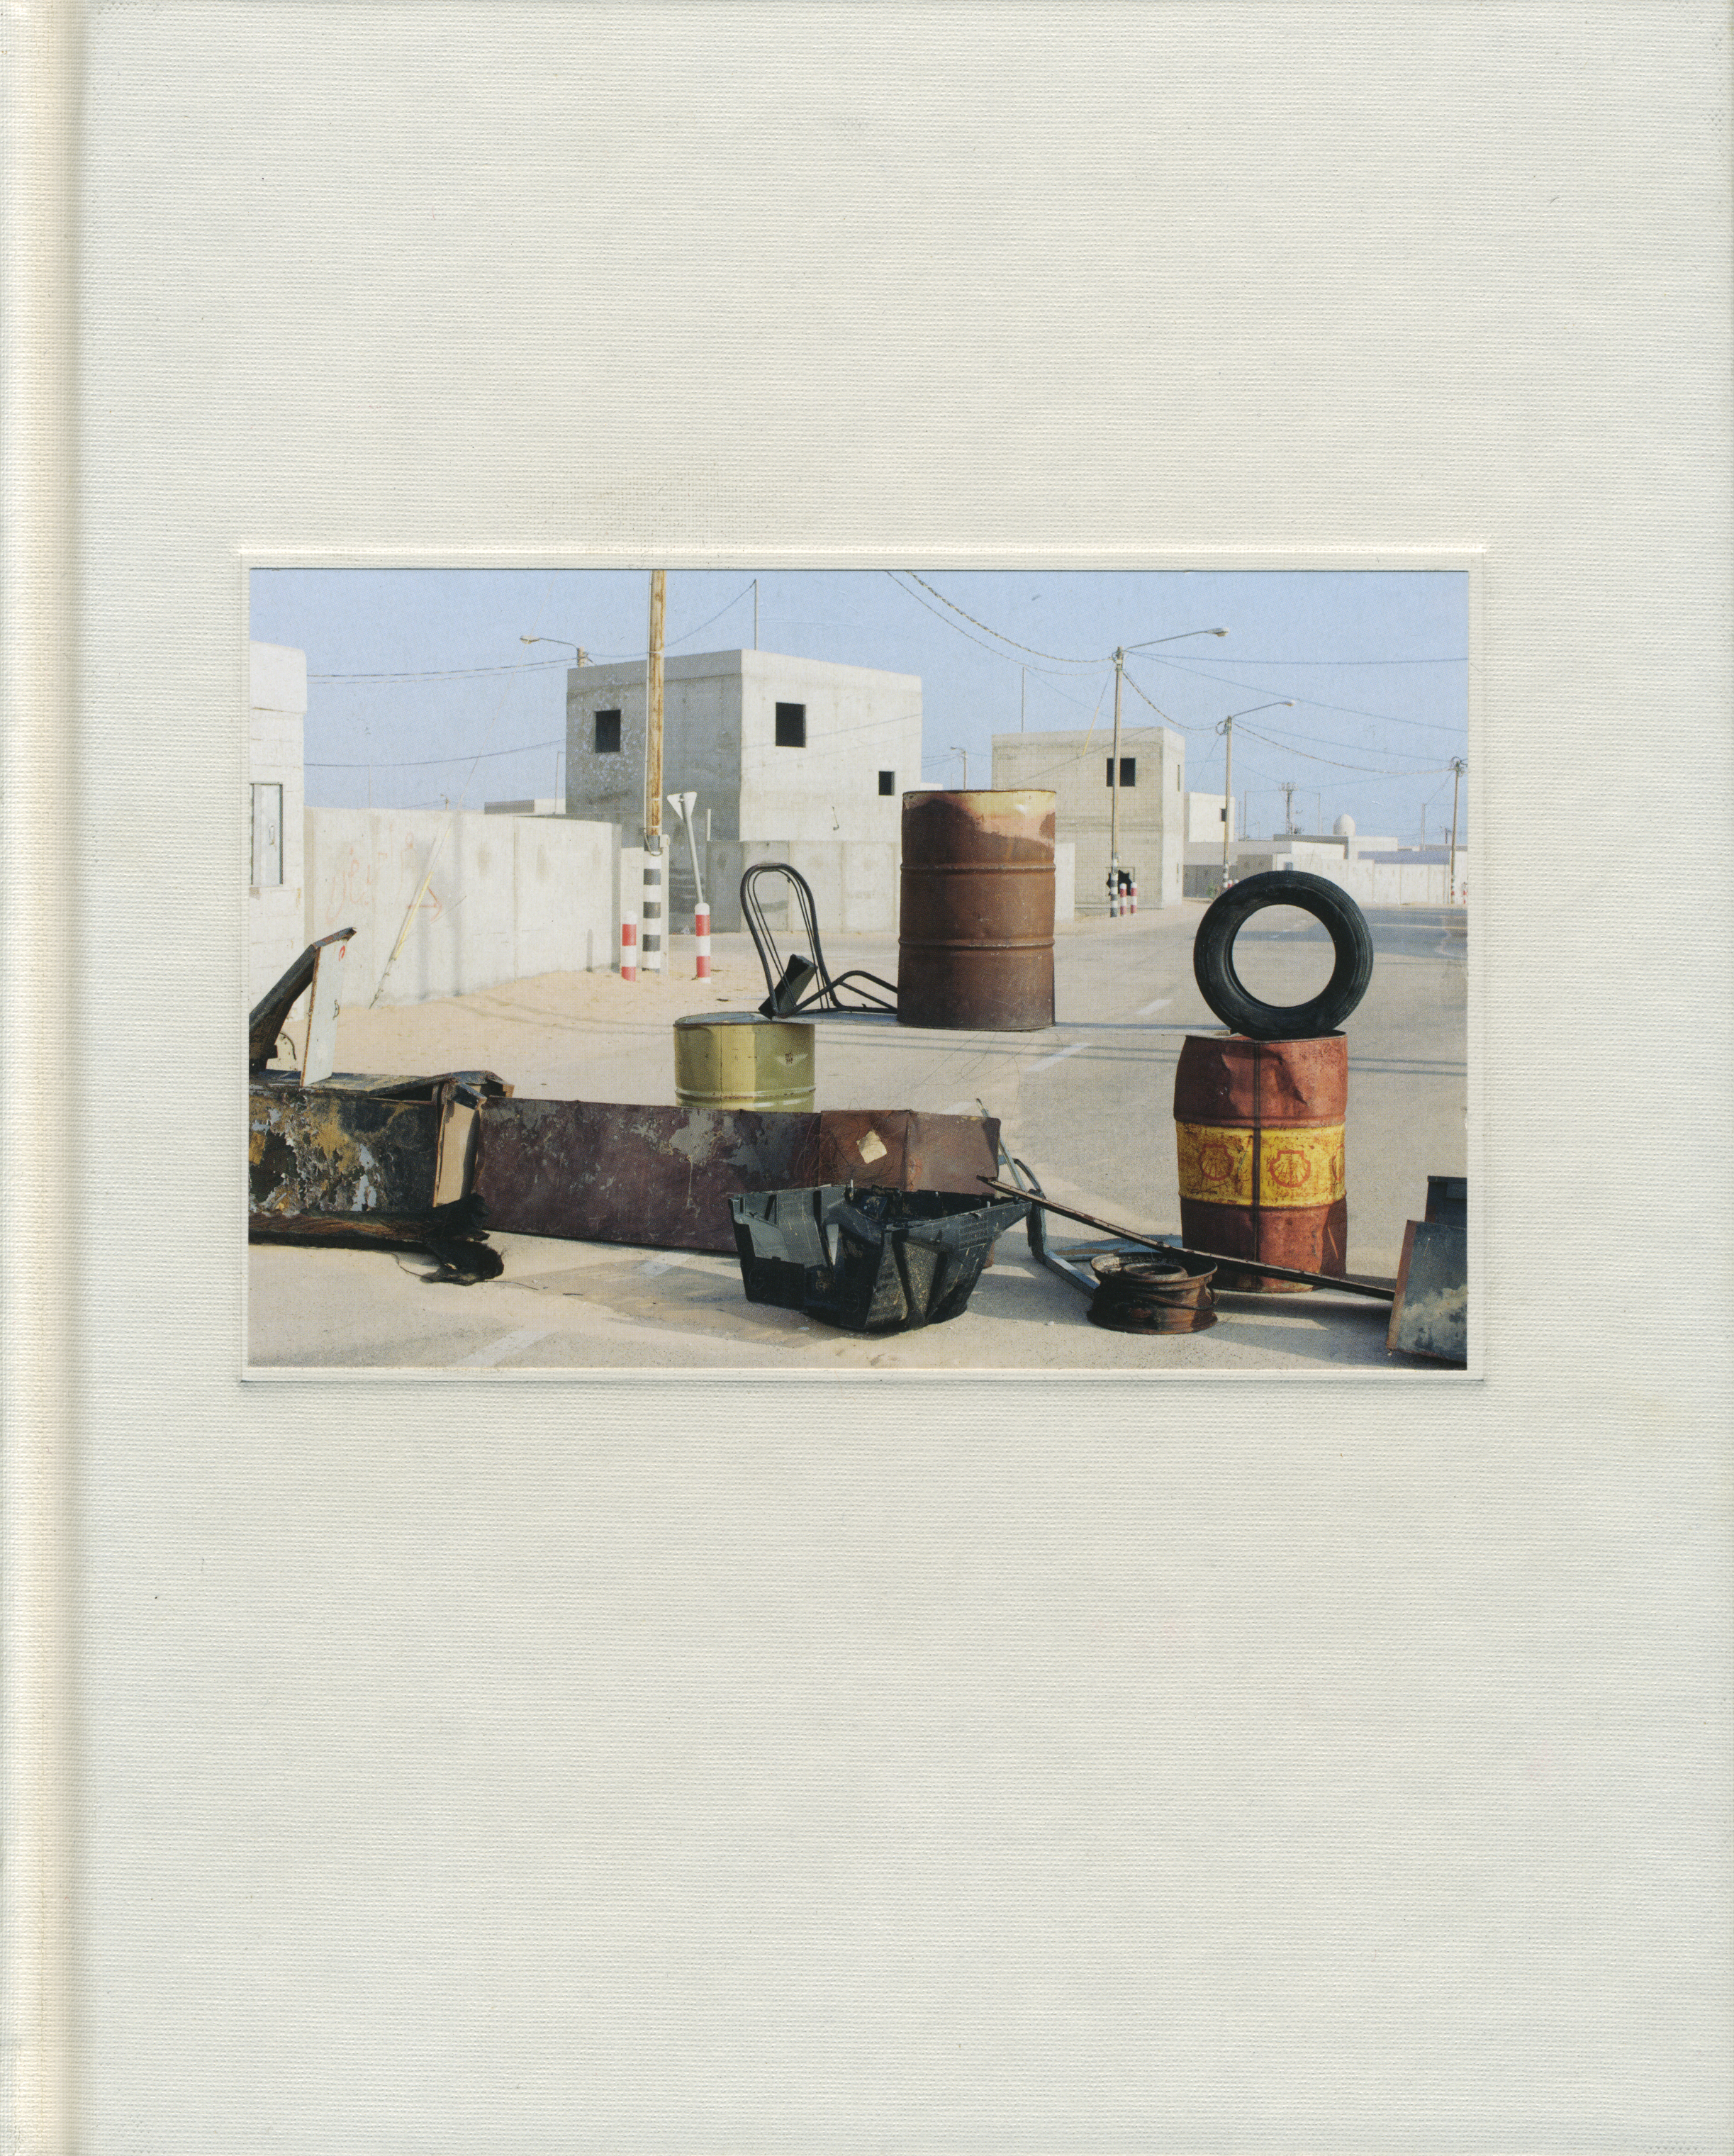 Martin Kollar Field Trip  mack books  76 Pages, 20 cm x 25 cm Hardcover /English Release date: October 2013 40,00 €